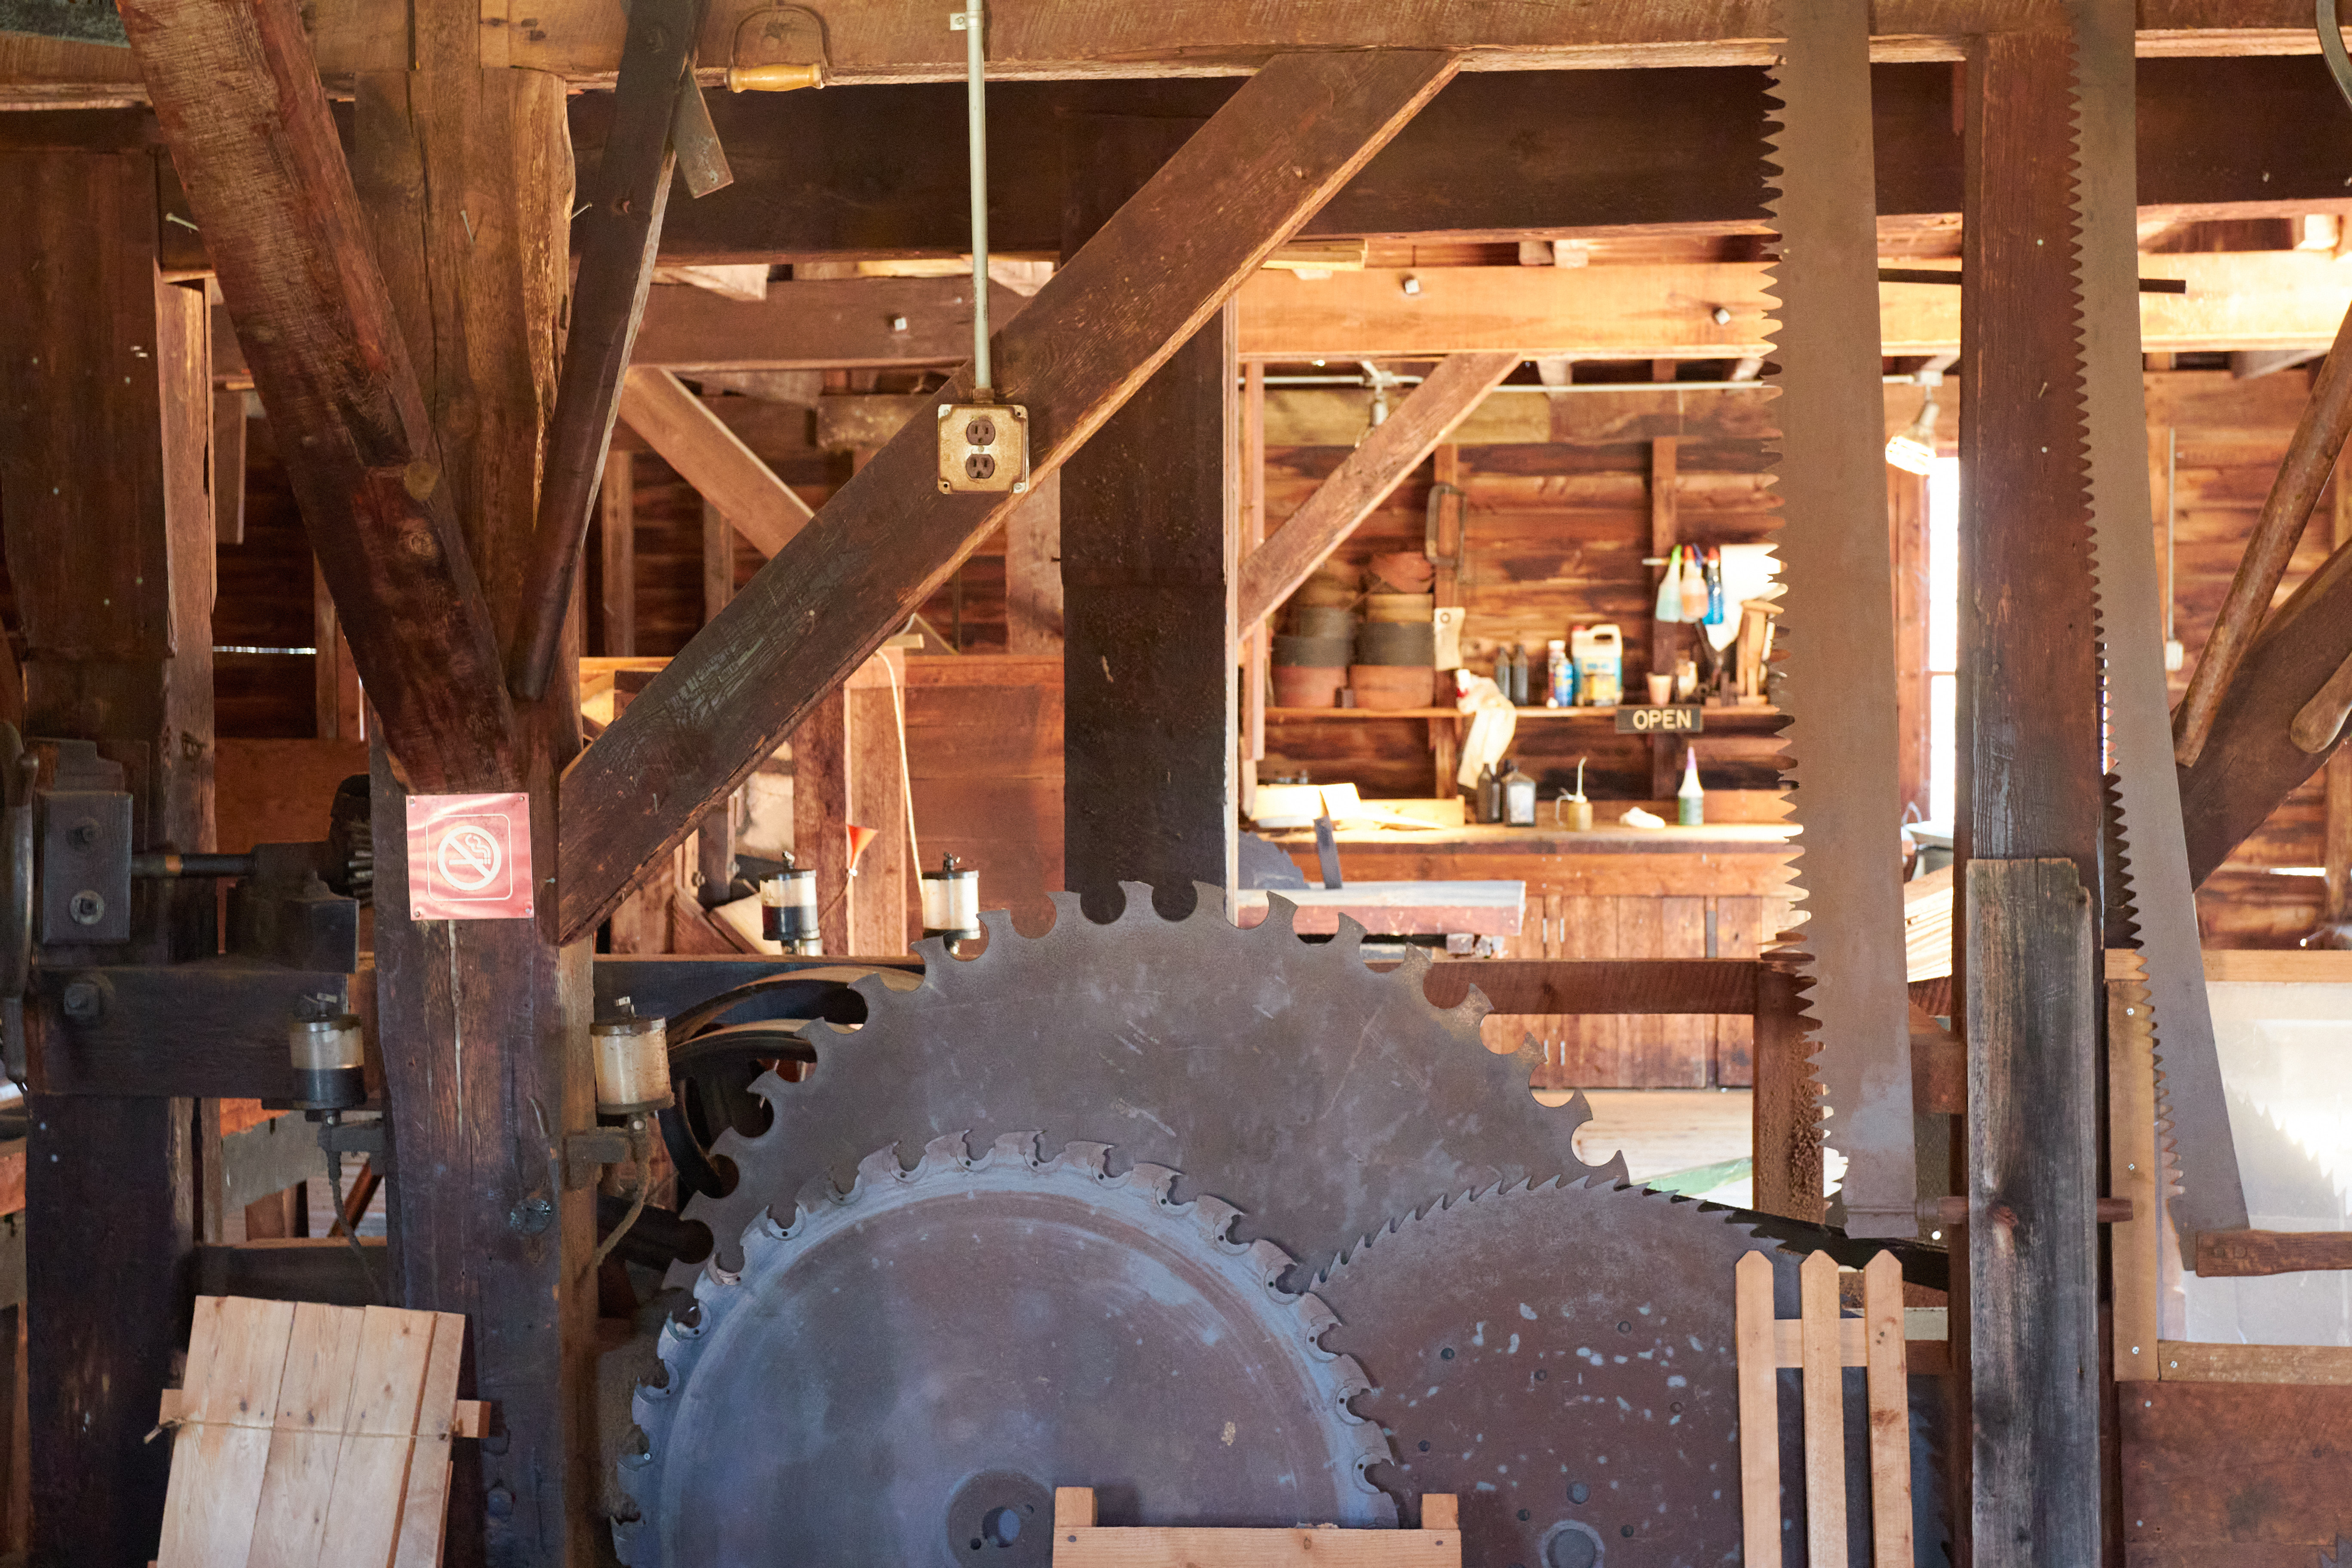 Interior of saw mill.